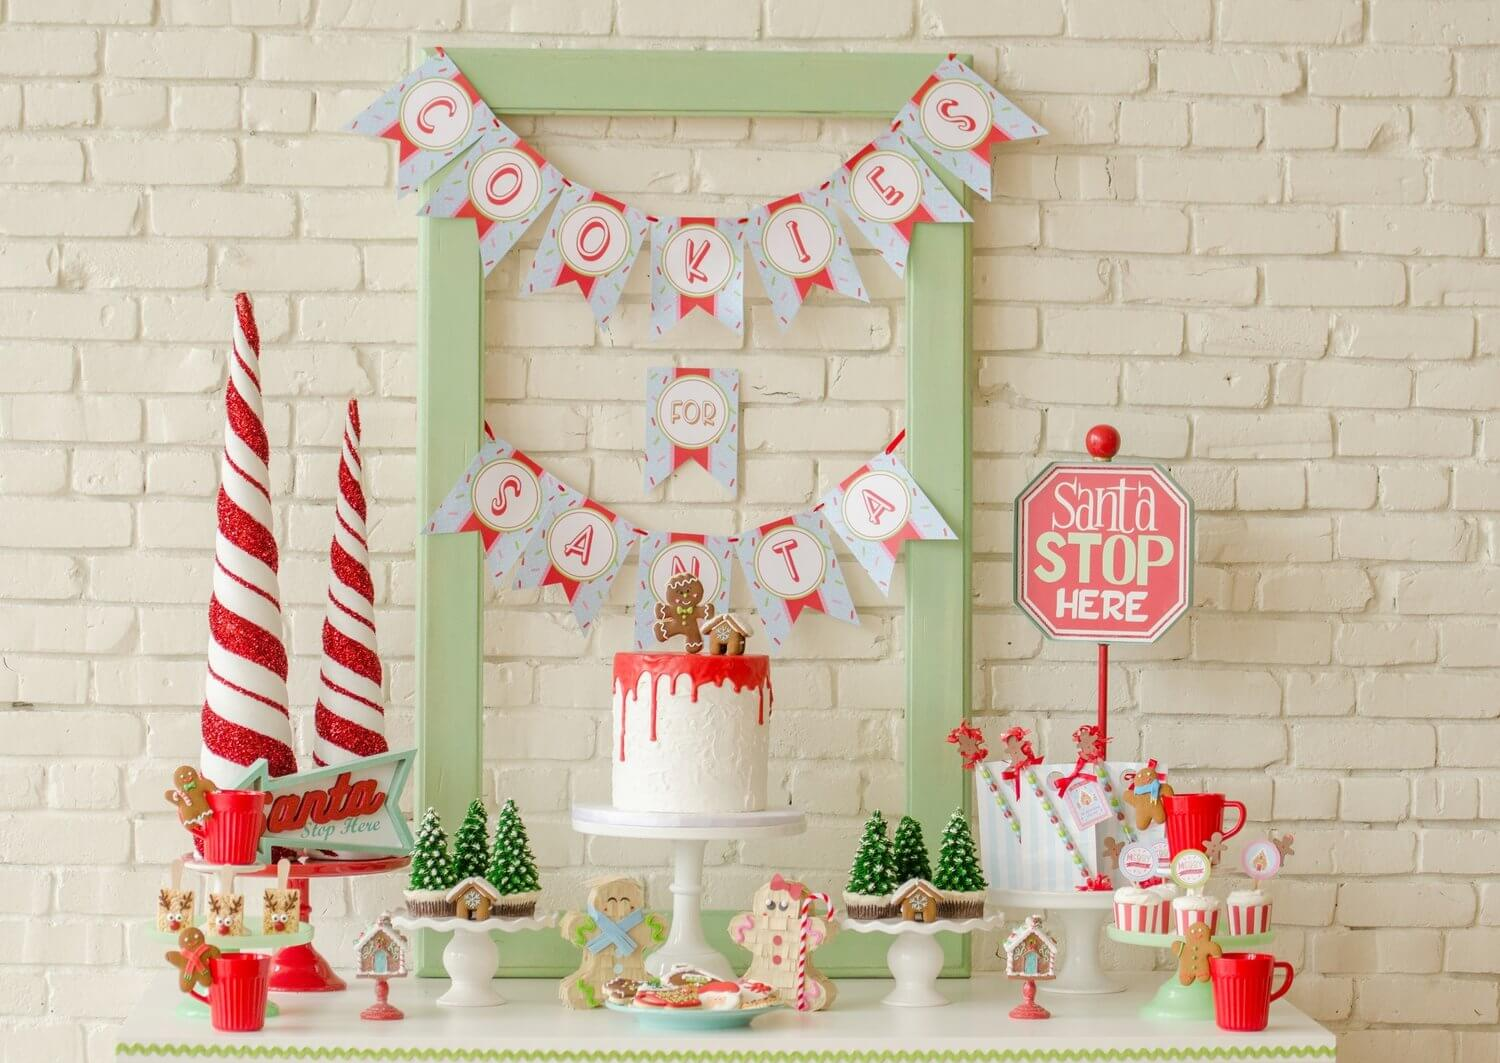 The cutest holiday dessert table for a Cookies for Santa party - as seen on www.minteventdesign.com - styled by Austin, Texas based party planner Mint Event Design. #holidayparty #holidaypartyideas #christmaspartyideas #christmascake #holidaydesserts #partybanner #holidaydecorations